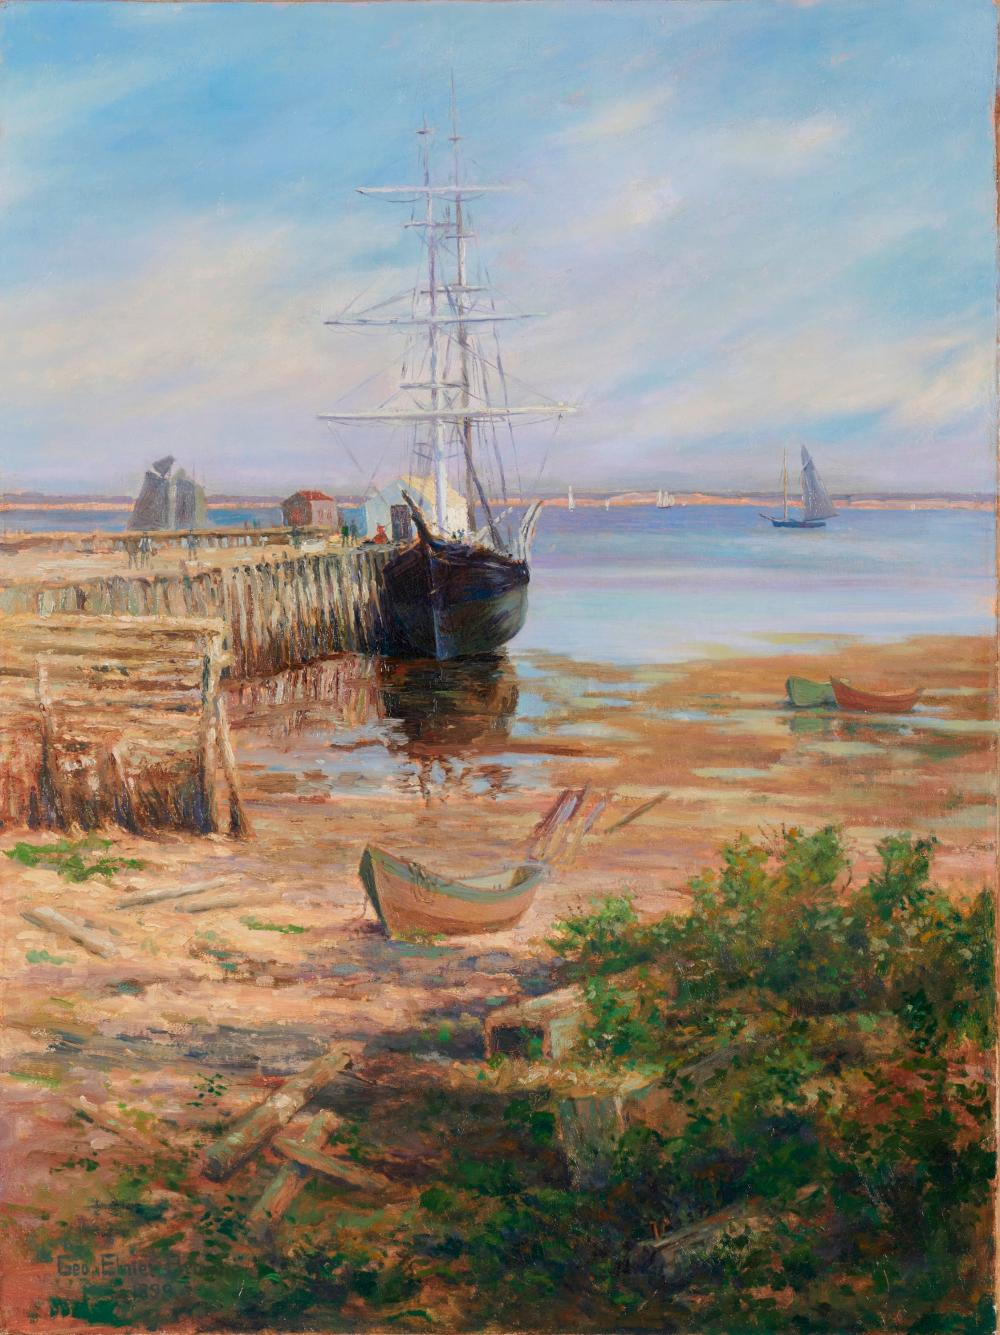 GEORGE ELMER BROWNE, (American, 1871-1946), Harbor View, 1899, oil on canvas, 48 1/2 x 36 1/2 in.